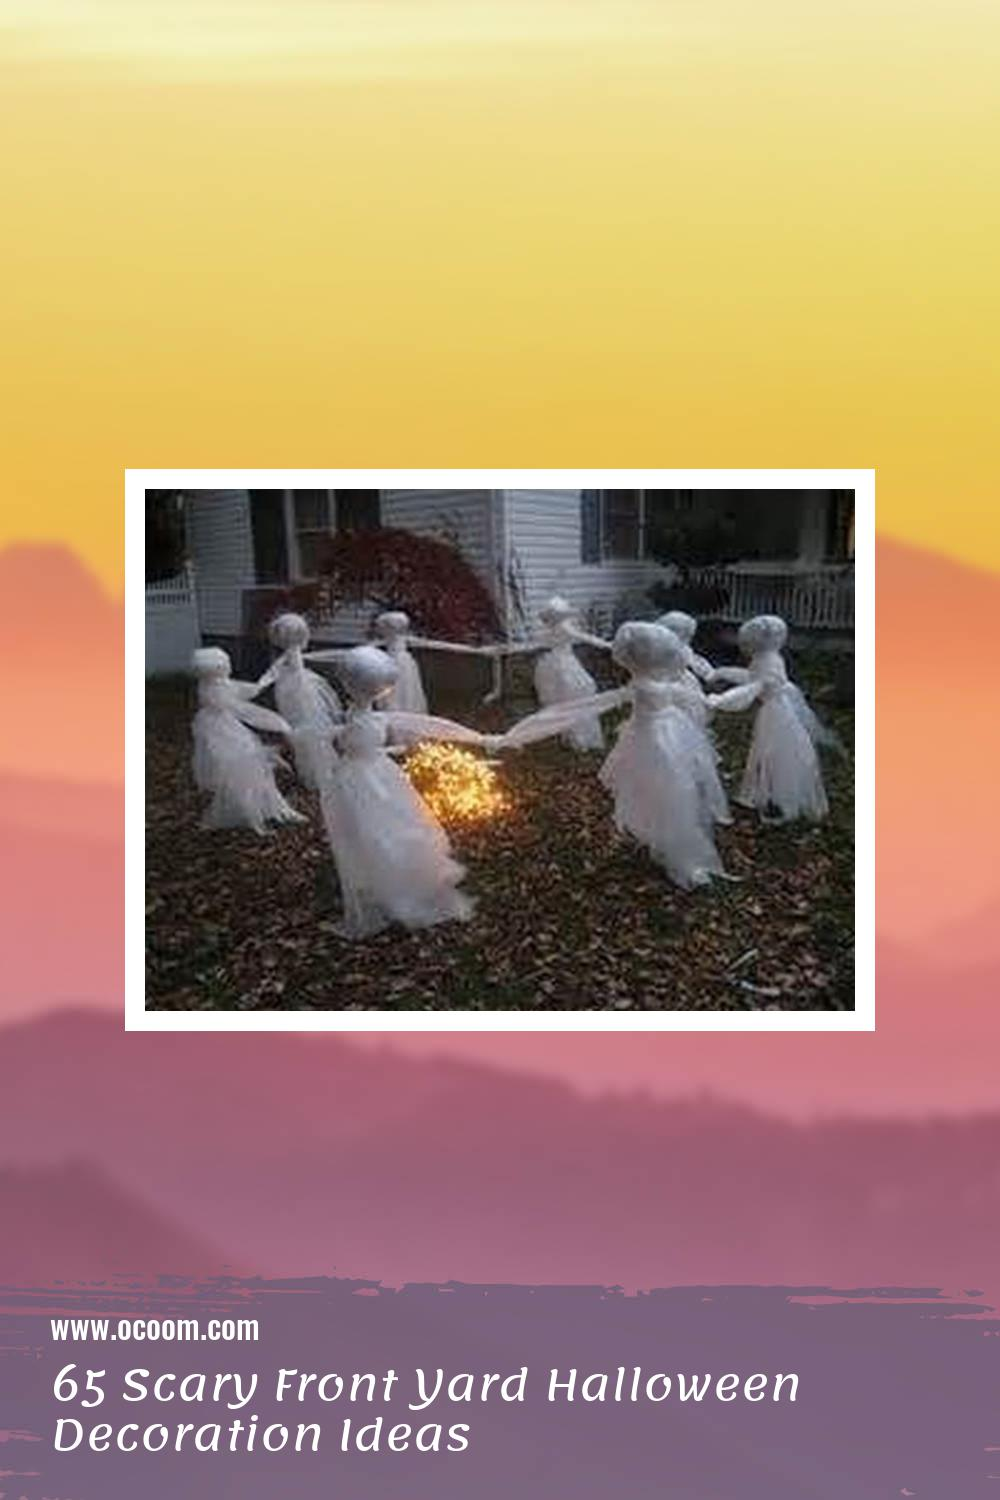 65 Scary Front Yard Halloween Decoration Ideas 60